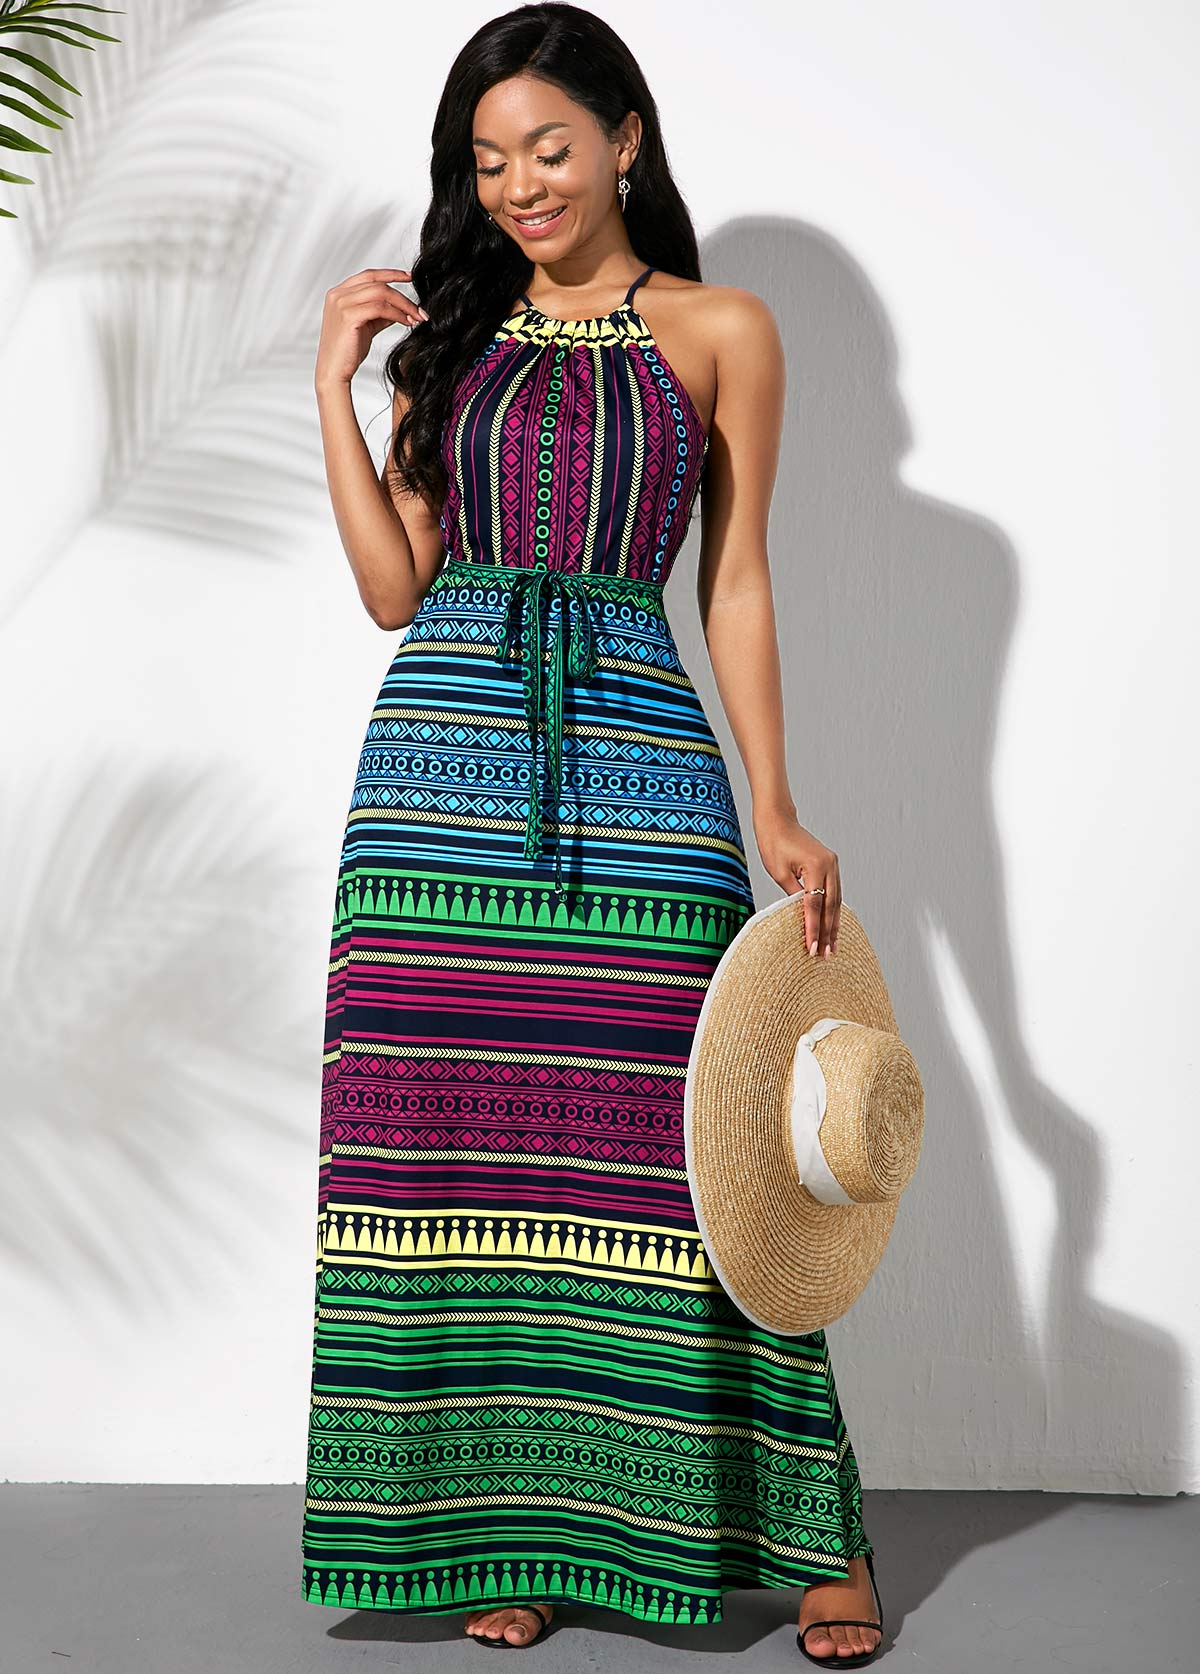 ROTITA Bowknot Sash Multicolor Striped Dress